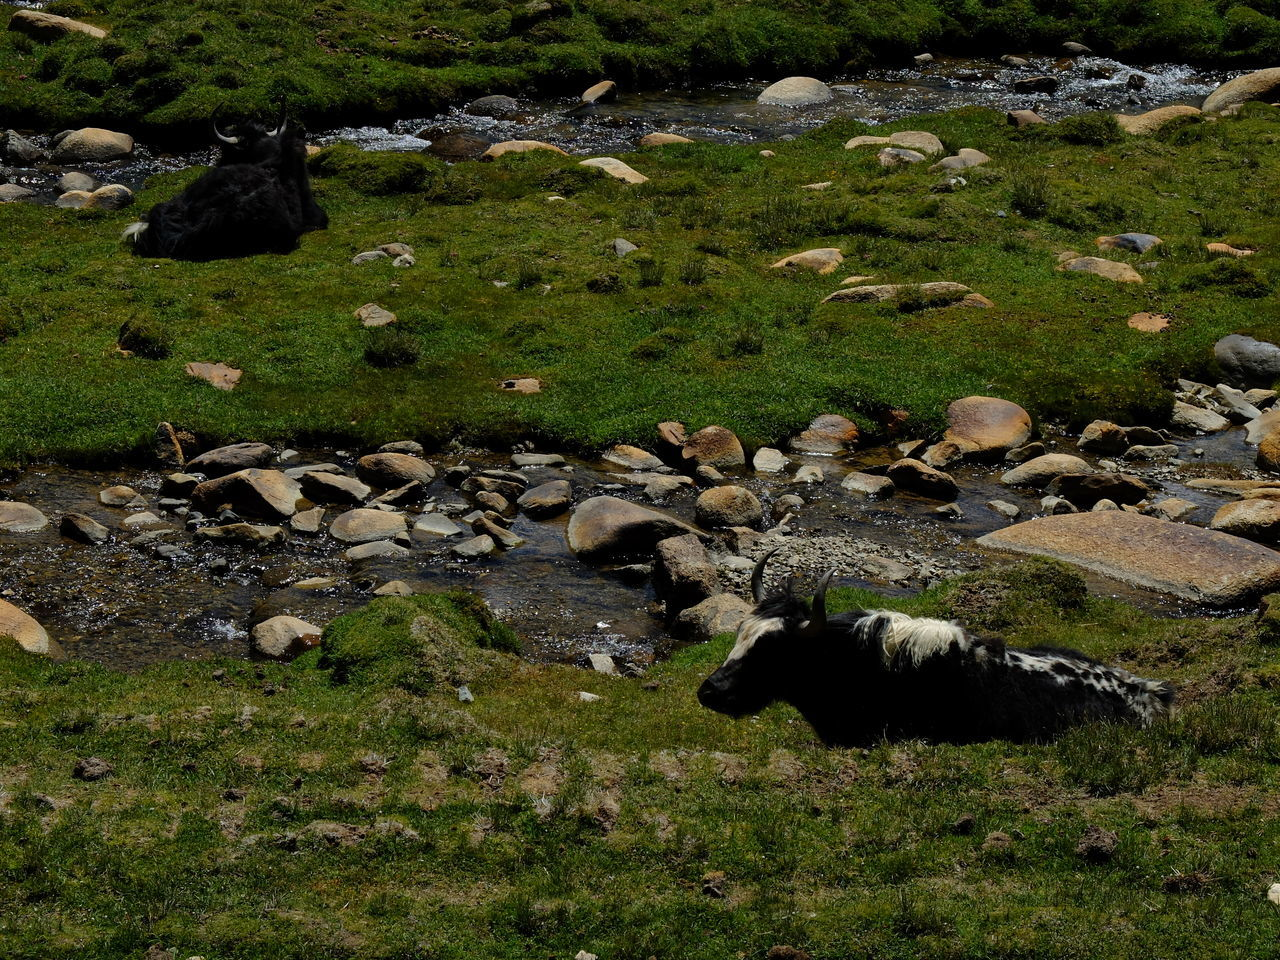 Animal Themes Day Domestic Animals Flock Of Sheep Grass Grazing High Angle View Jammu And Kashmir Large Group Of Animals Leh Ladakh Mammal Nature No People Outdoors Sheep